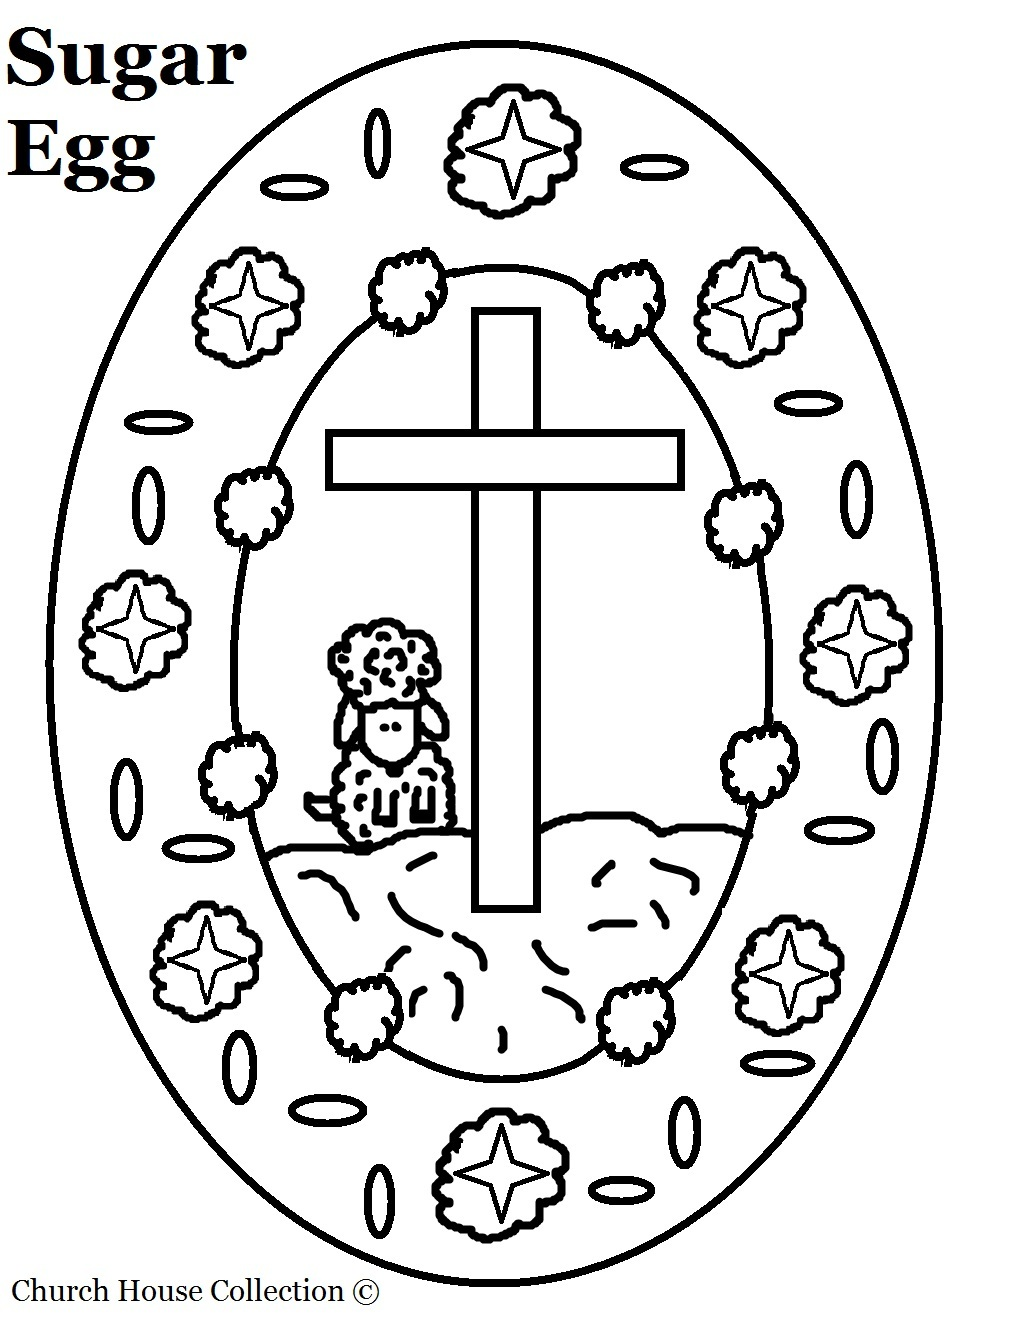 sugar egg with sheep and cross coloring page